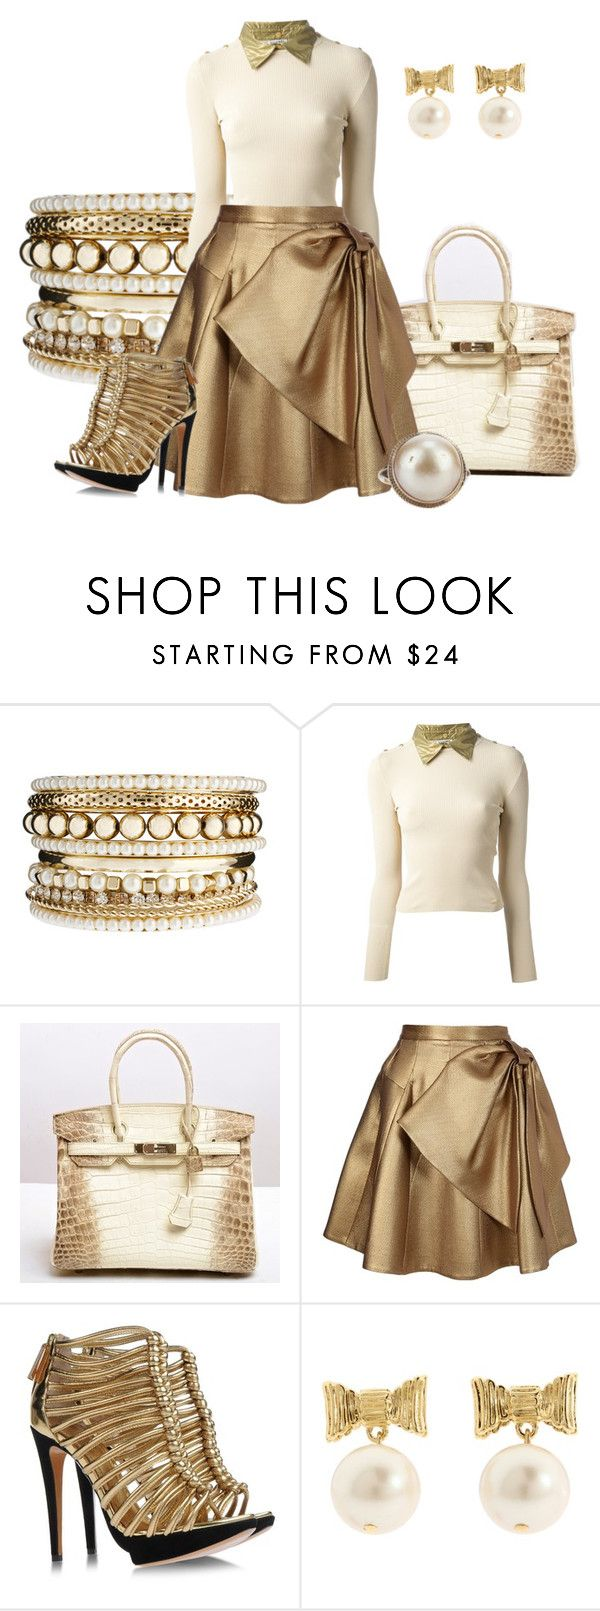 """Gold Collar"" by hope-houston ❤ liked on Polyvore featuring Oasis, Chanel, Hermès, Dice Kayek, Pollini and Kate Spade"